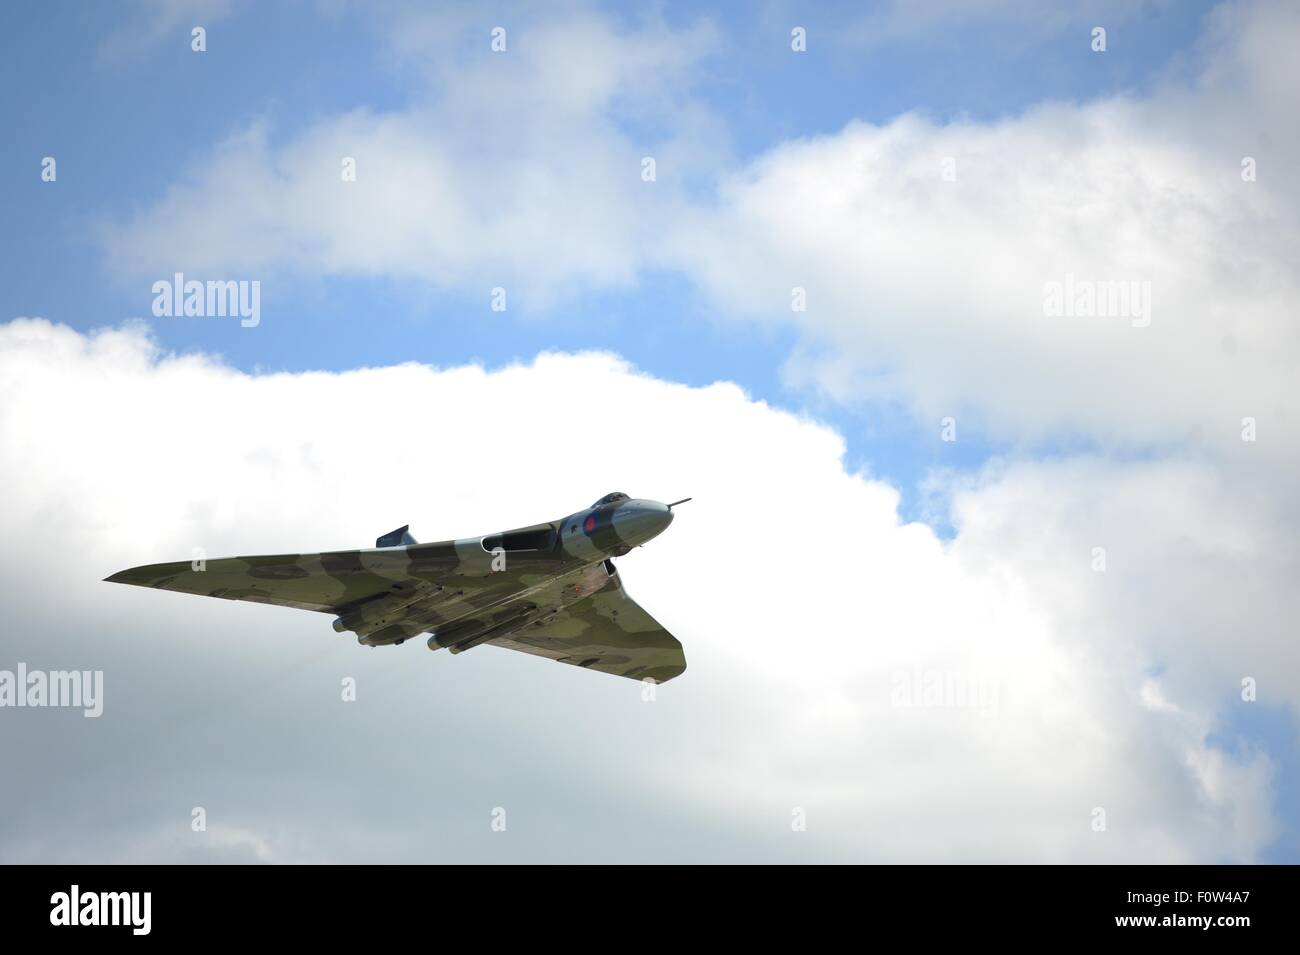 RAF Vulcan bomber on its final flight over East Midlands Airport - Stock Image